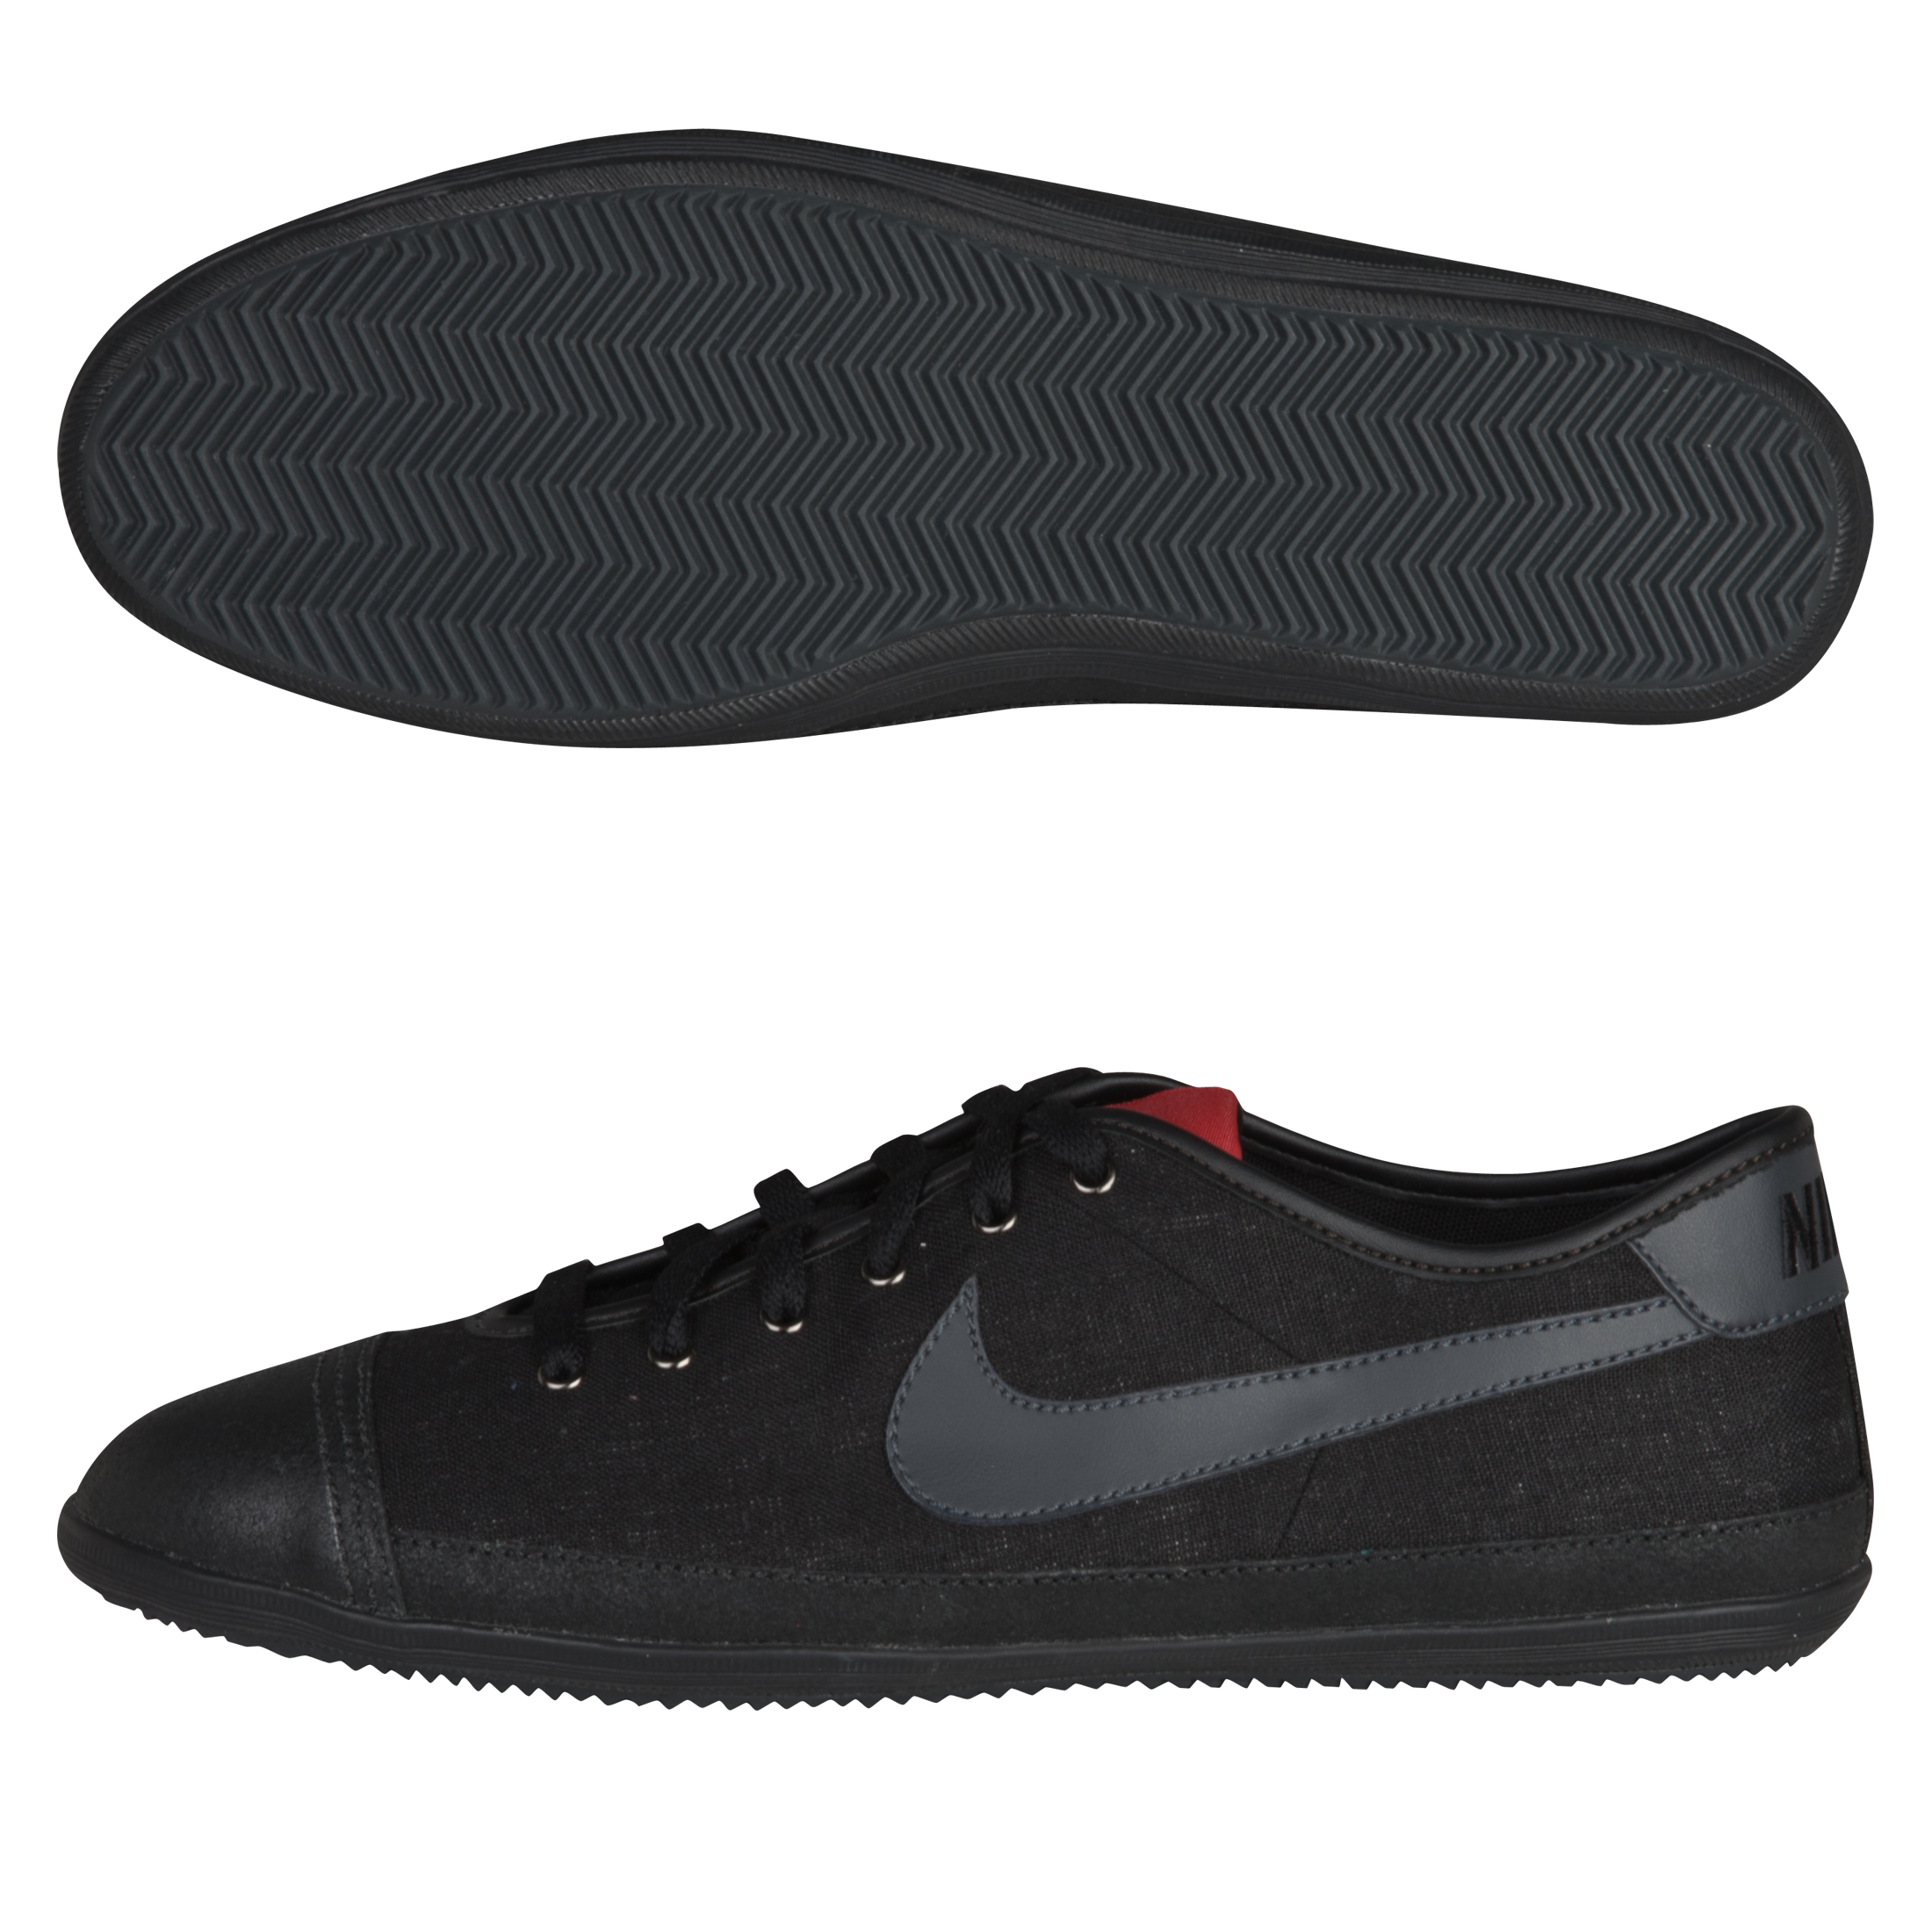 Nike Flash Textile Trainers - Black/Anthracite/Gym Red